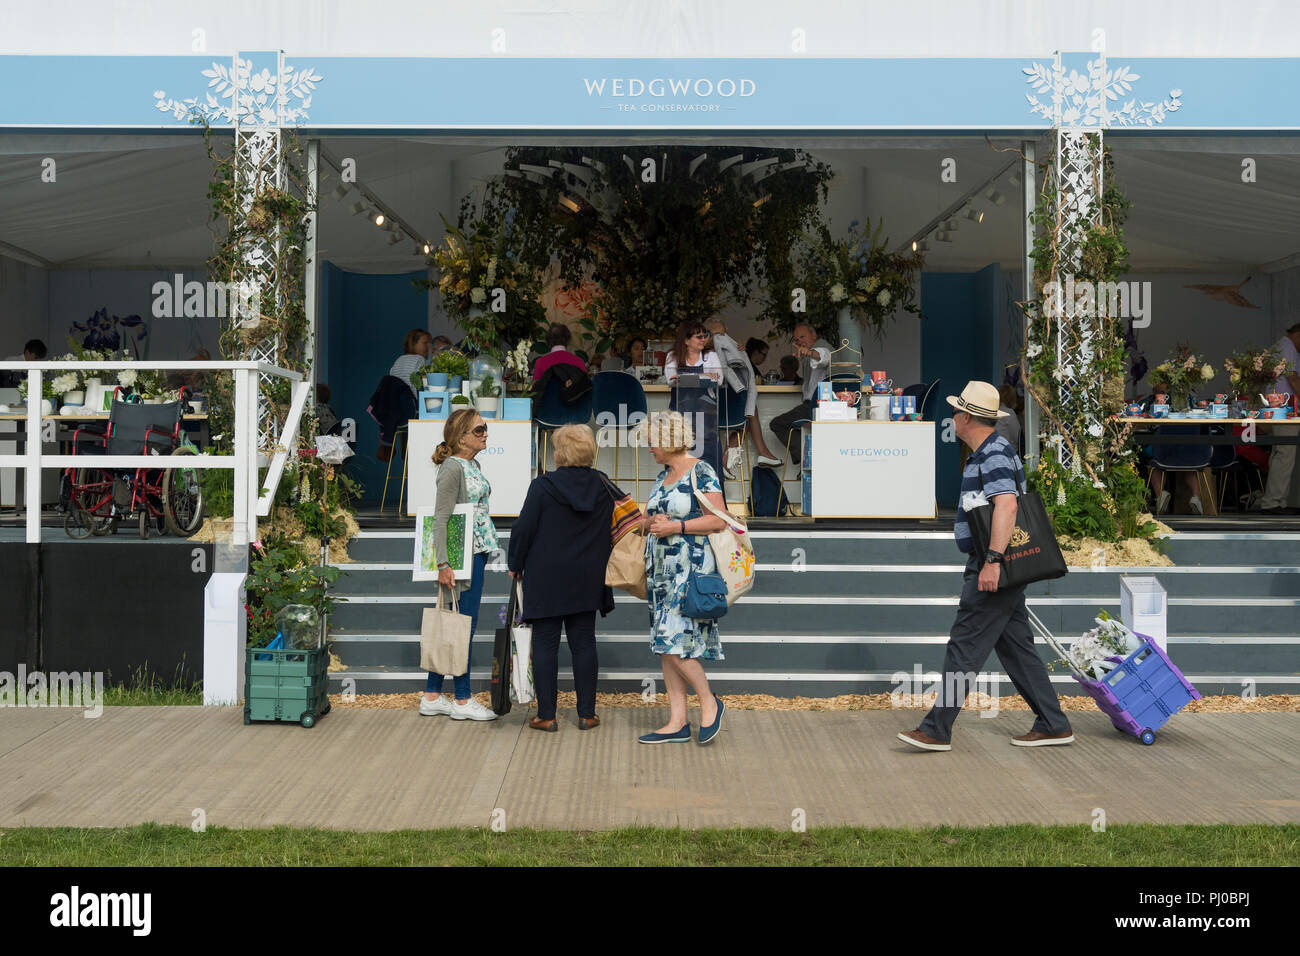 People at showground, walking past, standing by or sitting in Wedgewood refreshment marquee - RHS Chatsworth Flower Show, Derbyshire, England, UK. - Stock Image